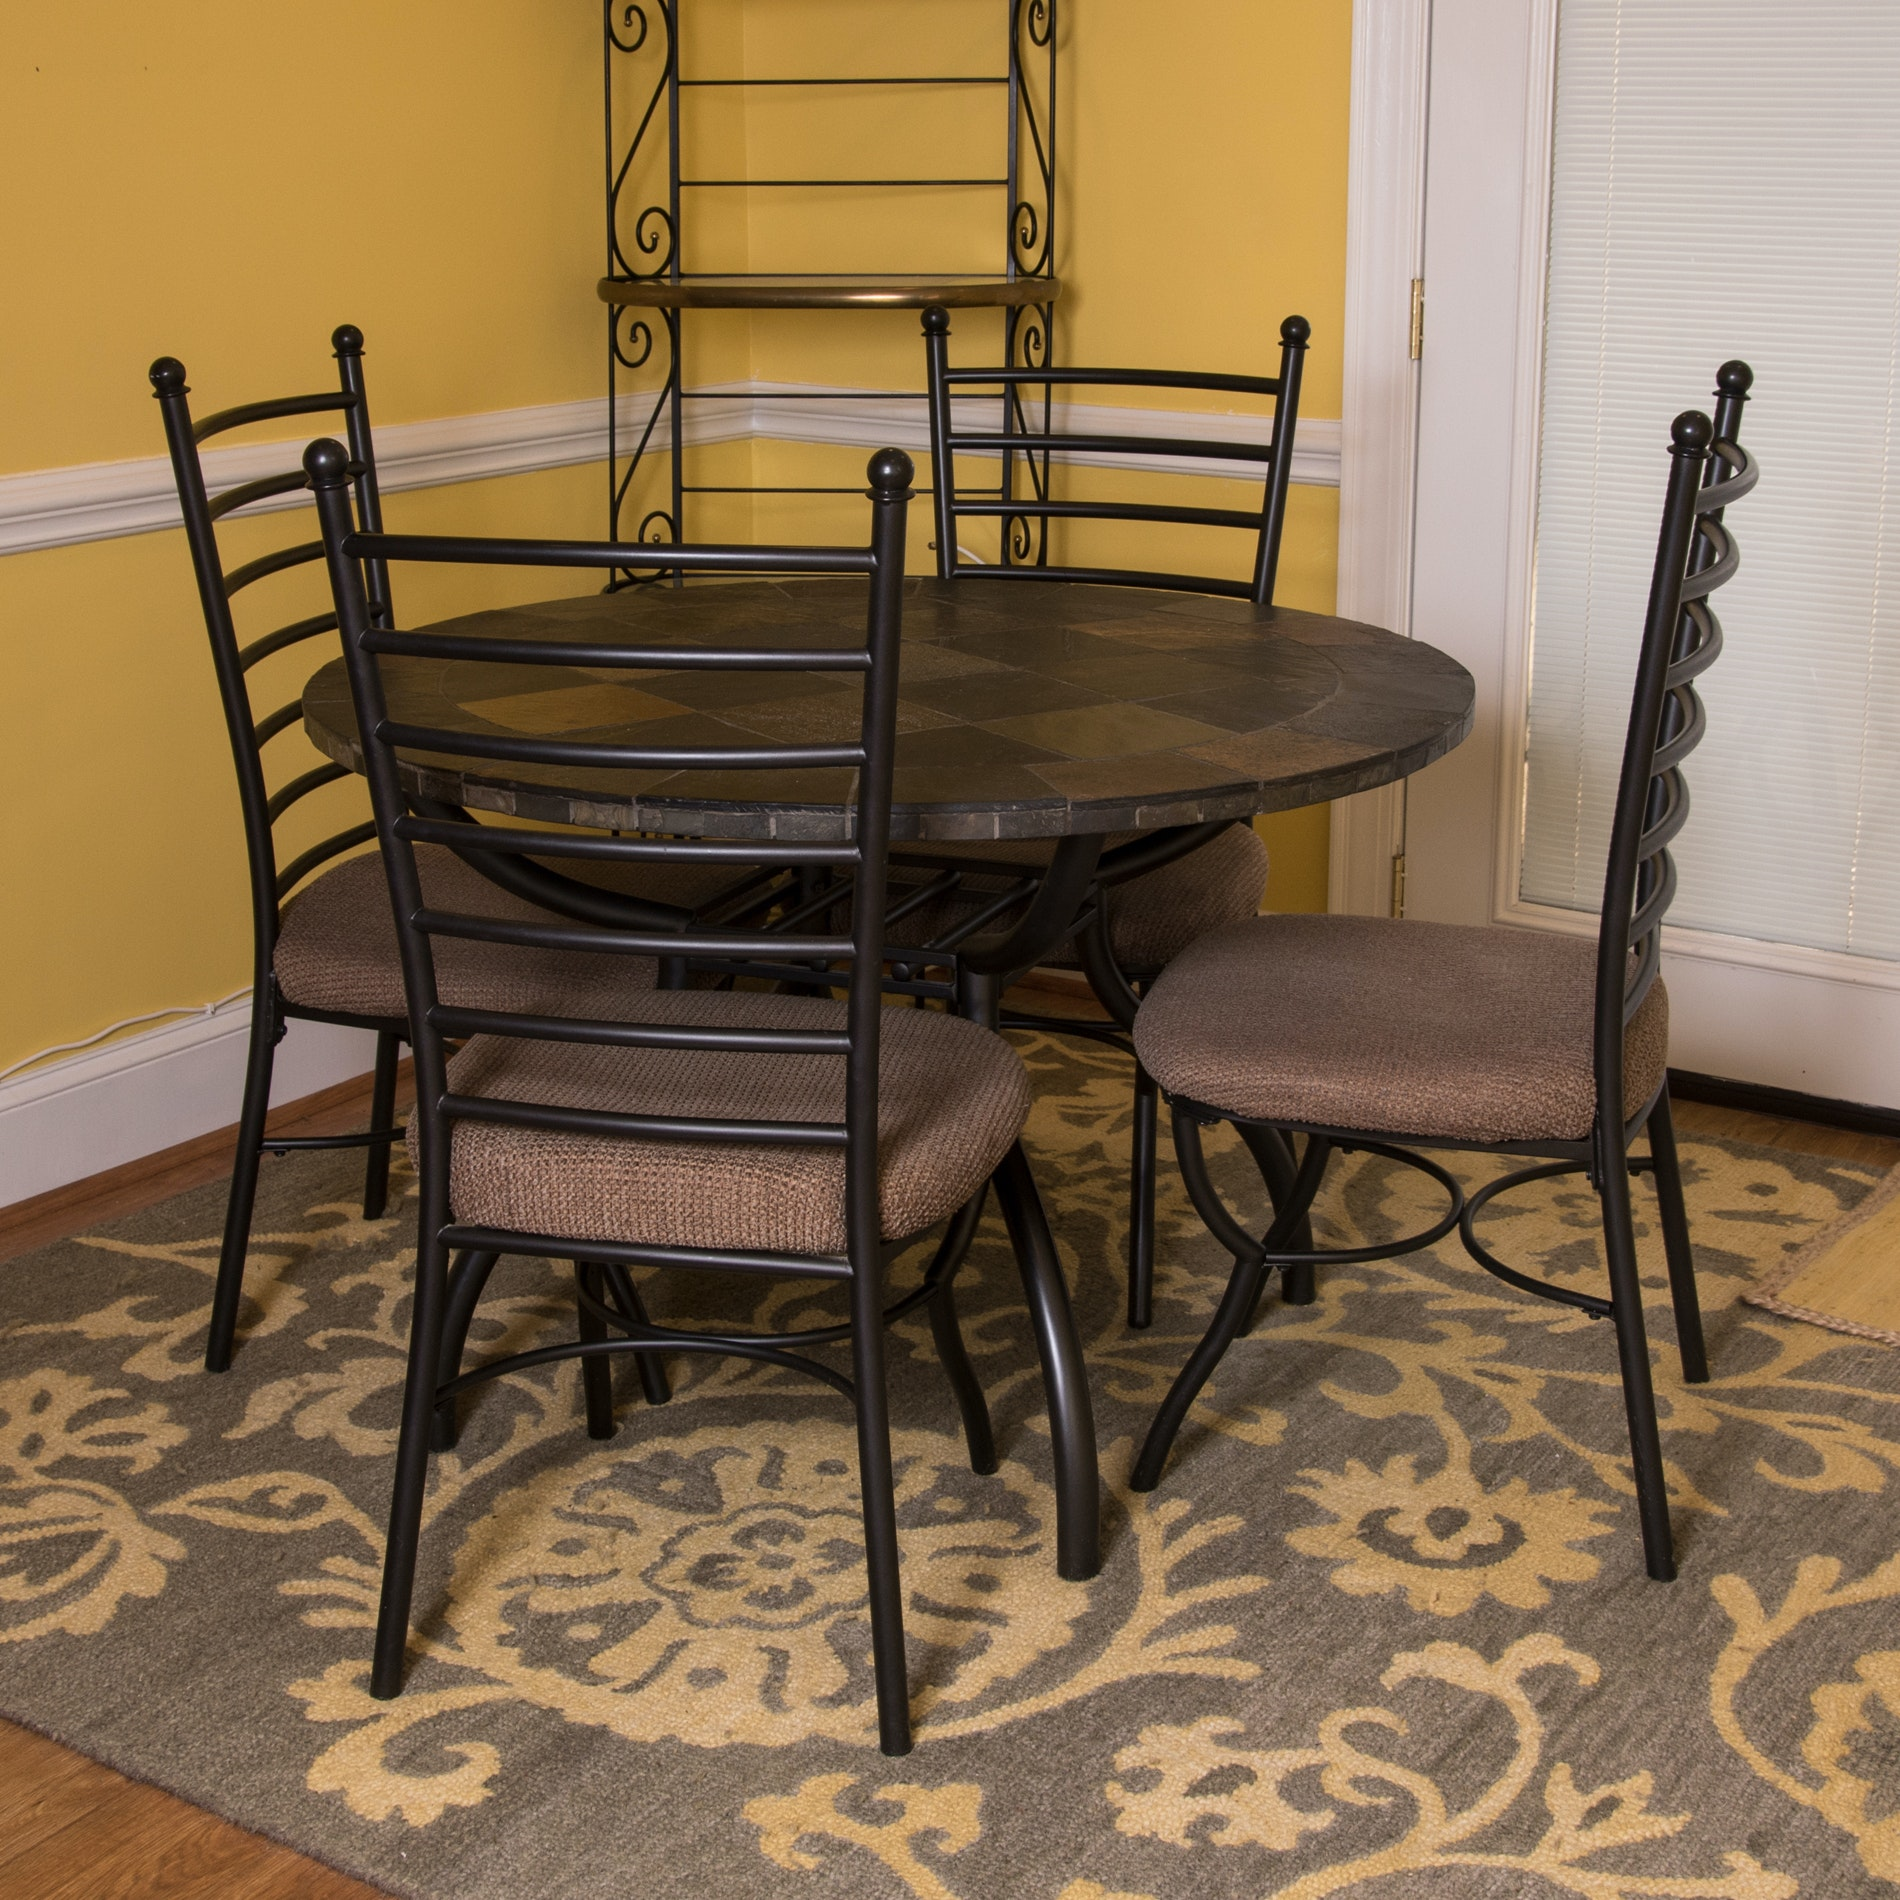 Contemporary Breakfast Table and Chairs